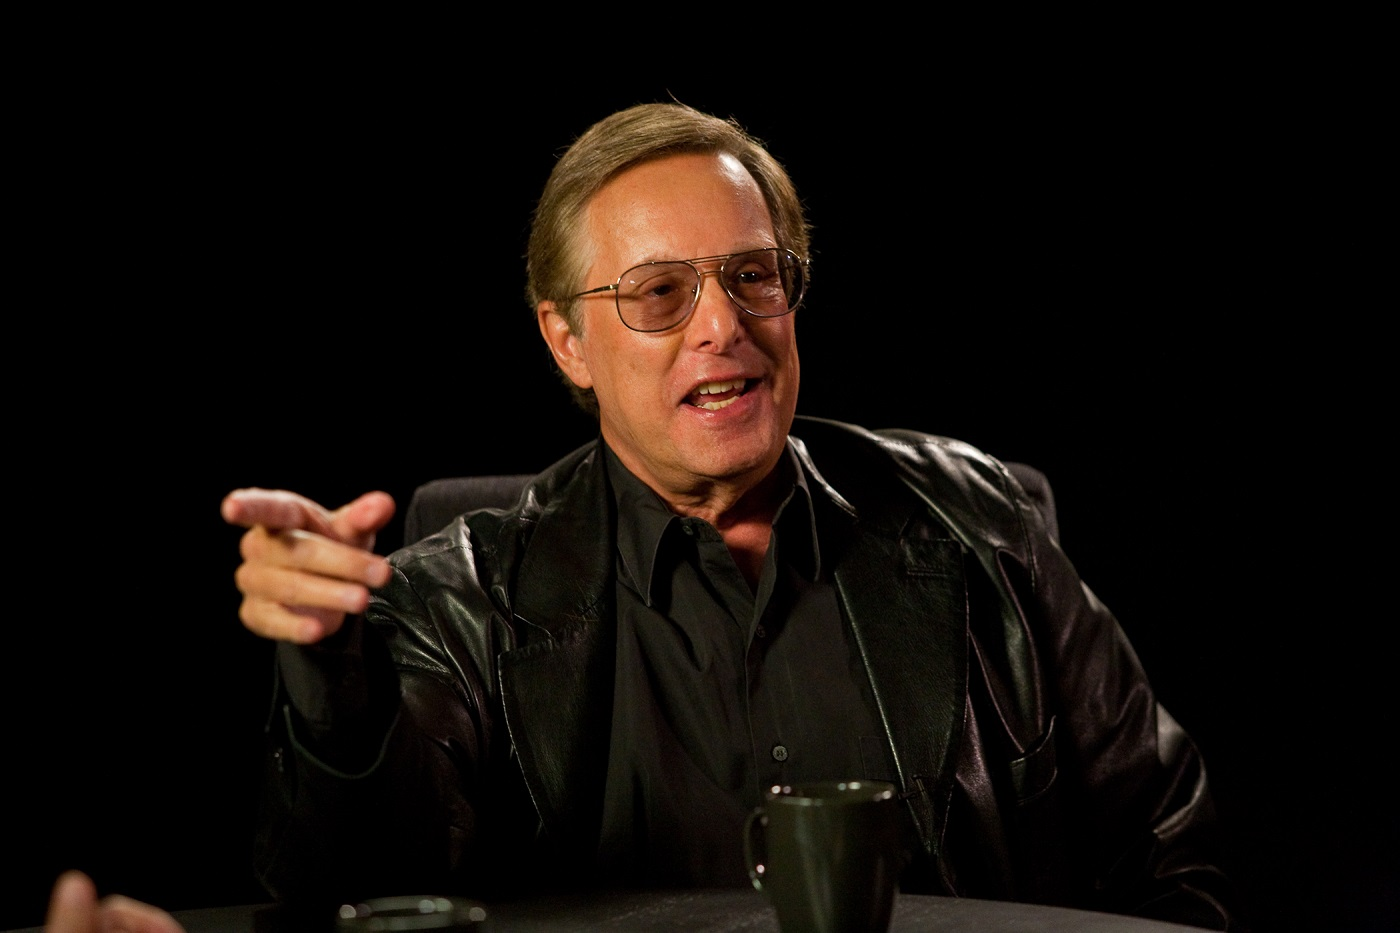 Lucca Film Festival-Europacinema, arriva William Friedkin